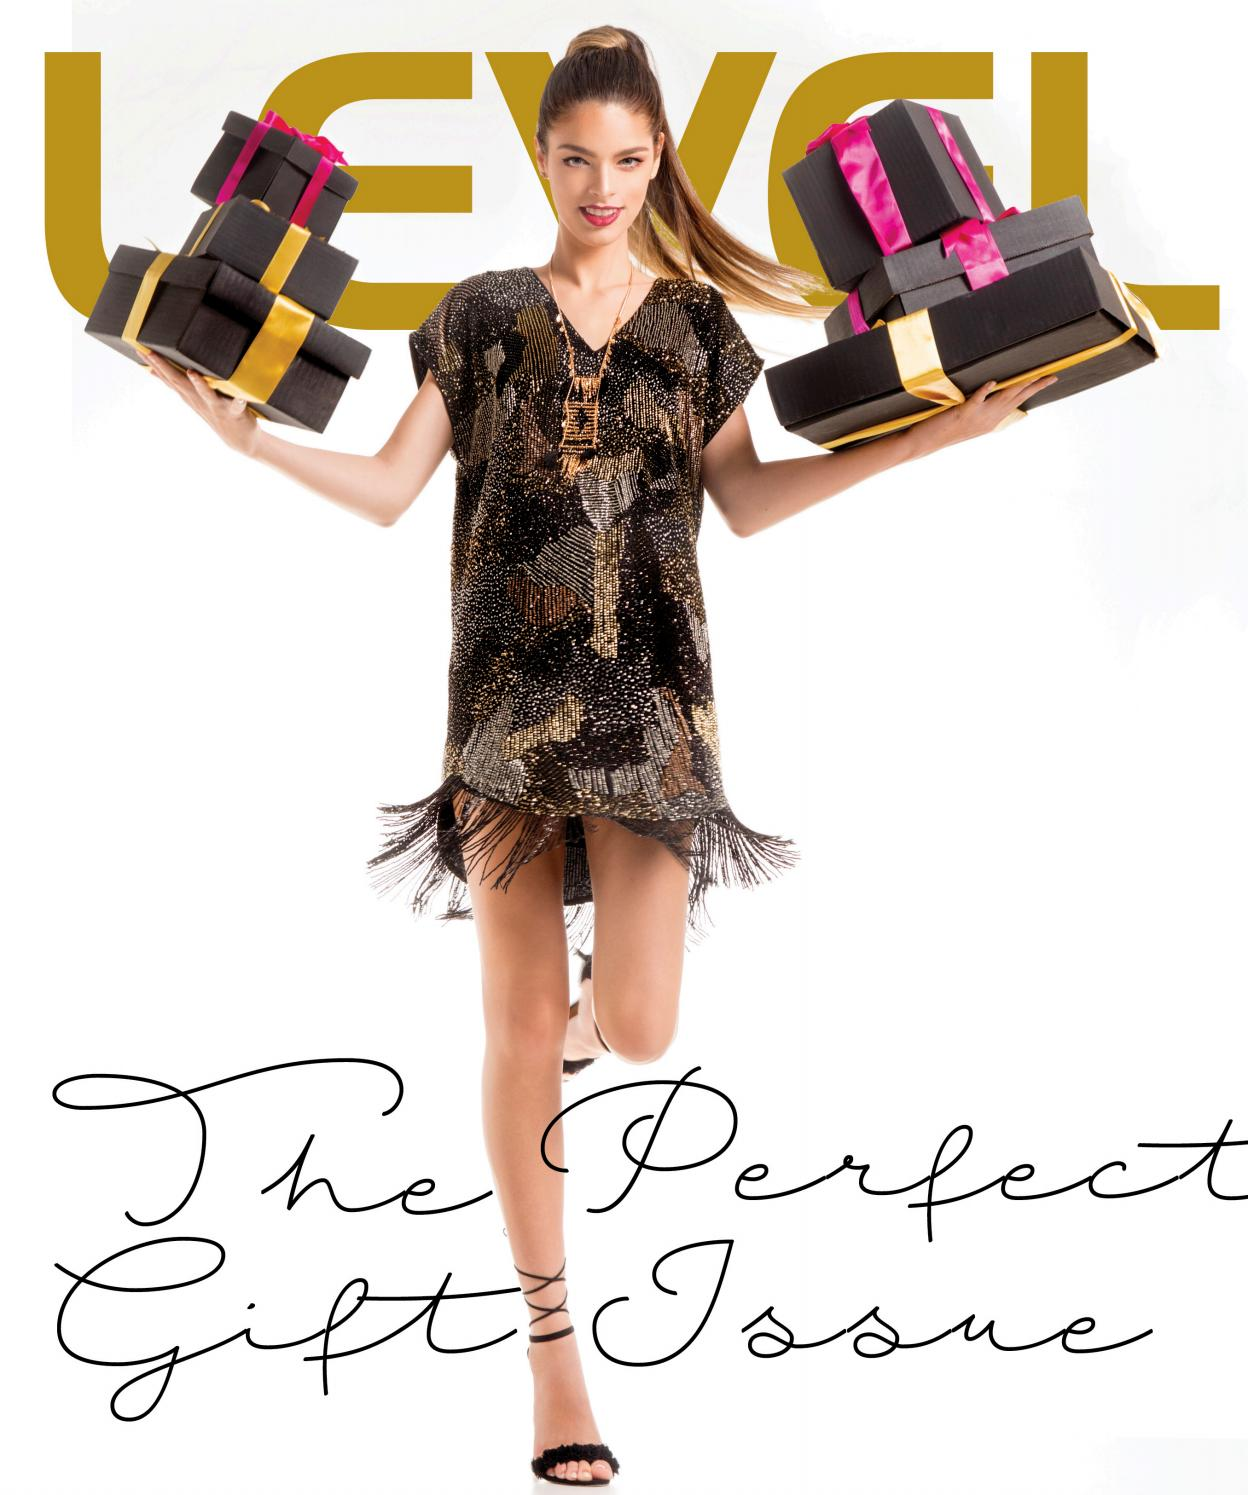 32861a2b78 53 The Perfect Gift Issue 2017 by Revista Level - issuu